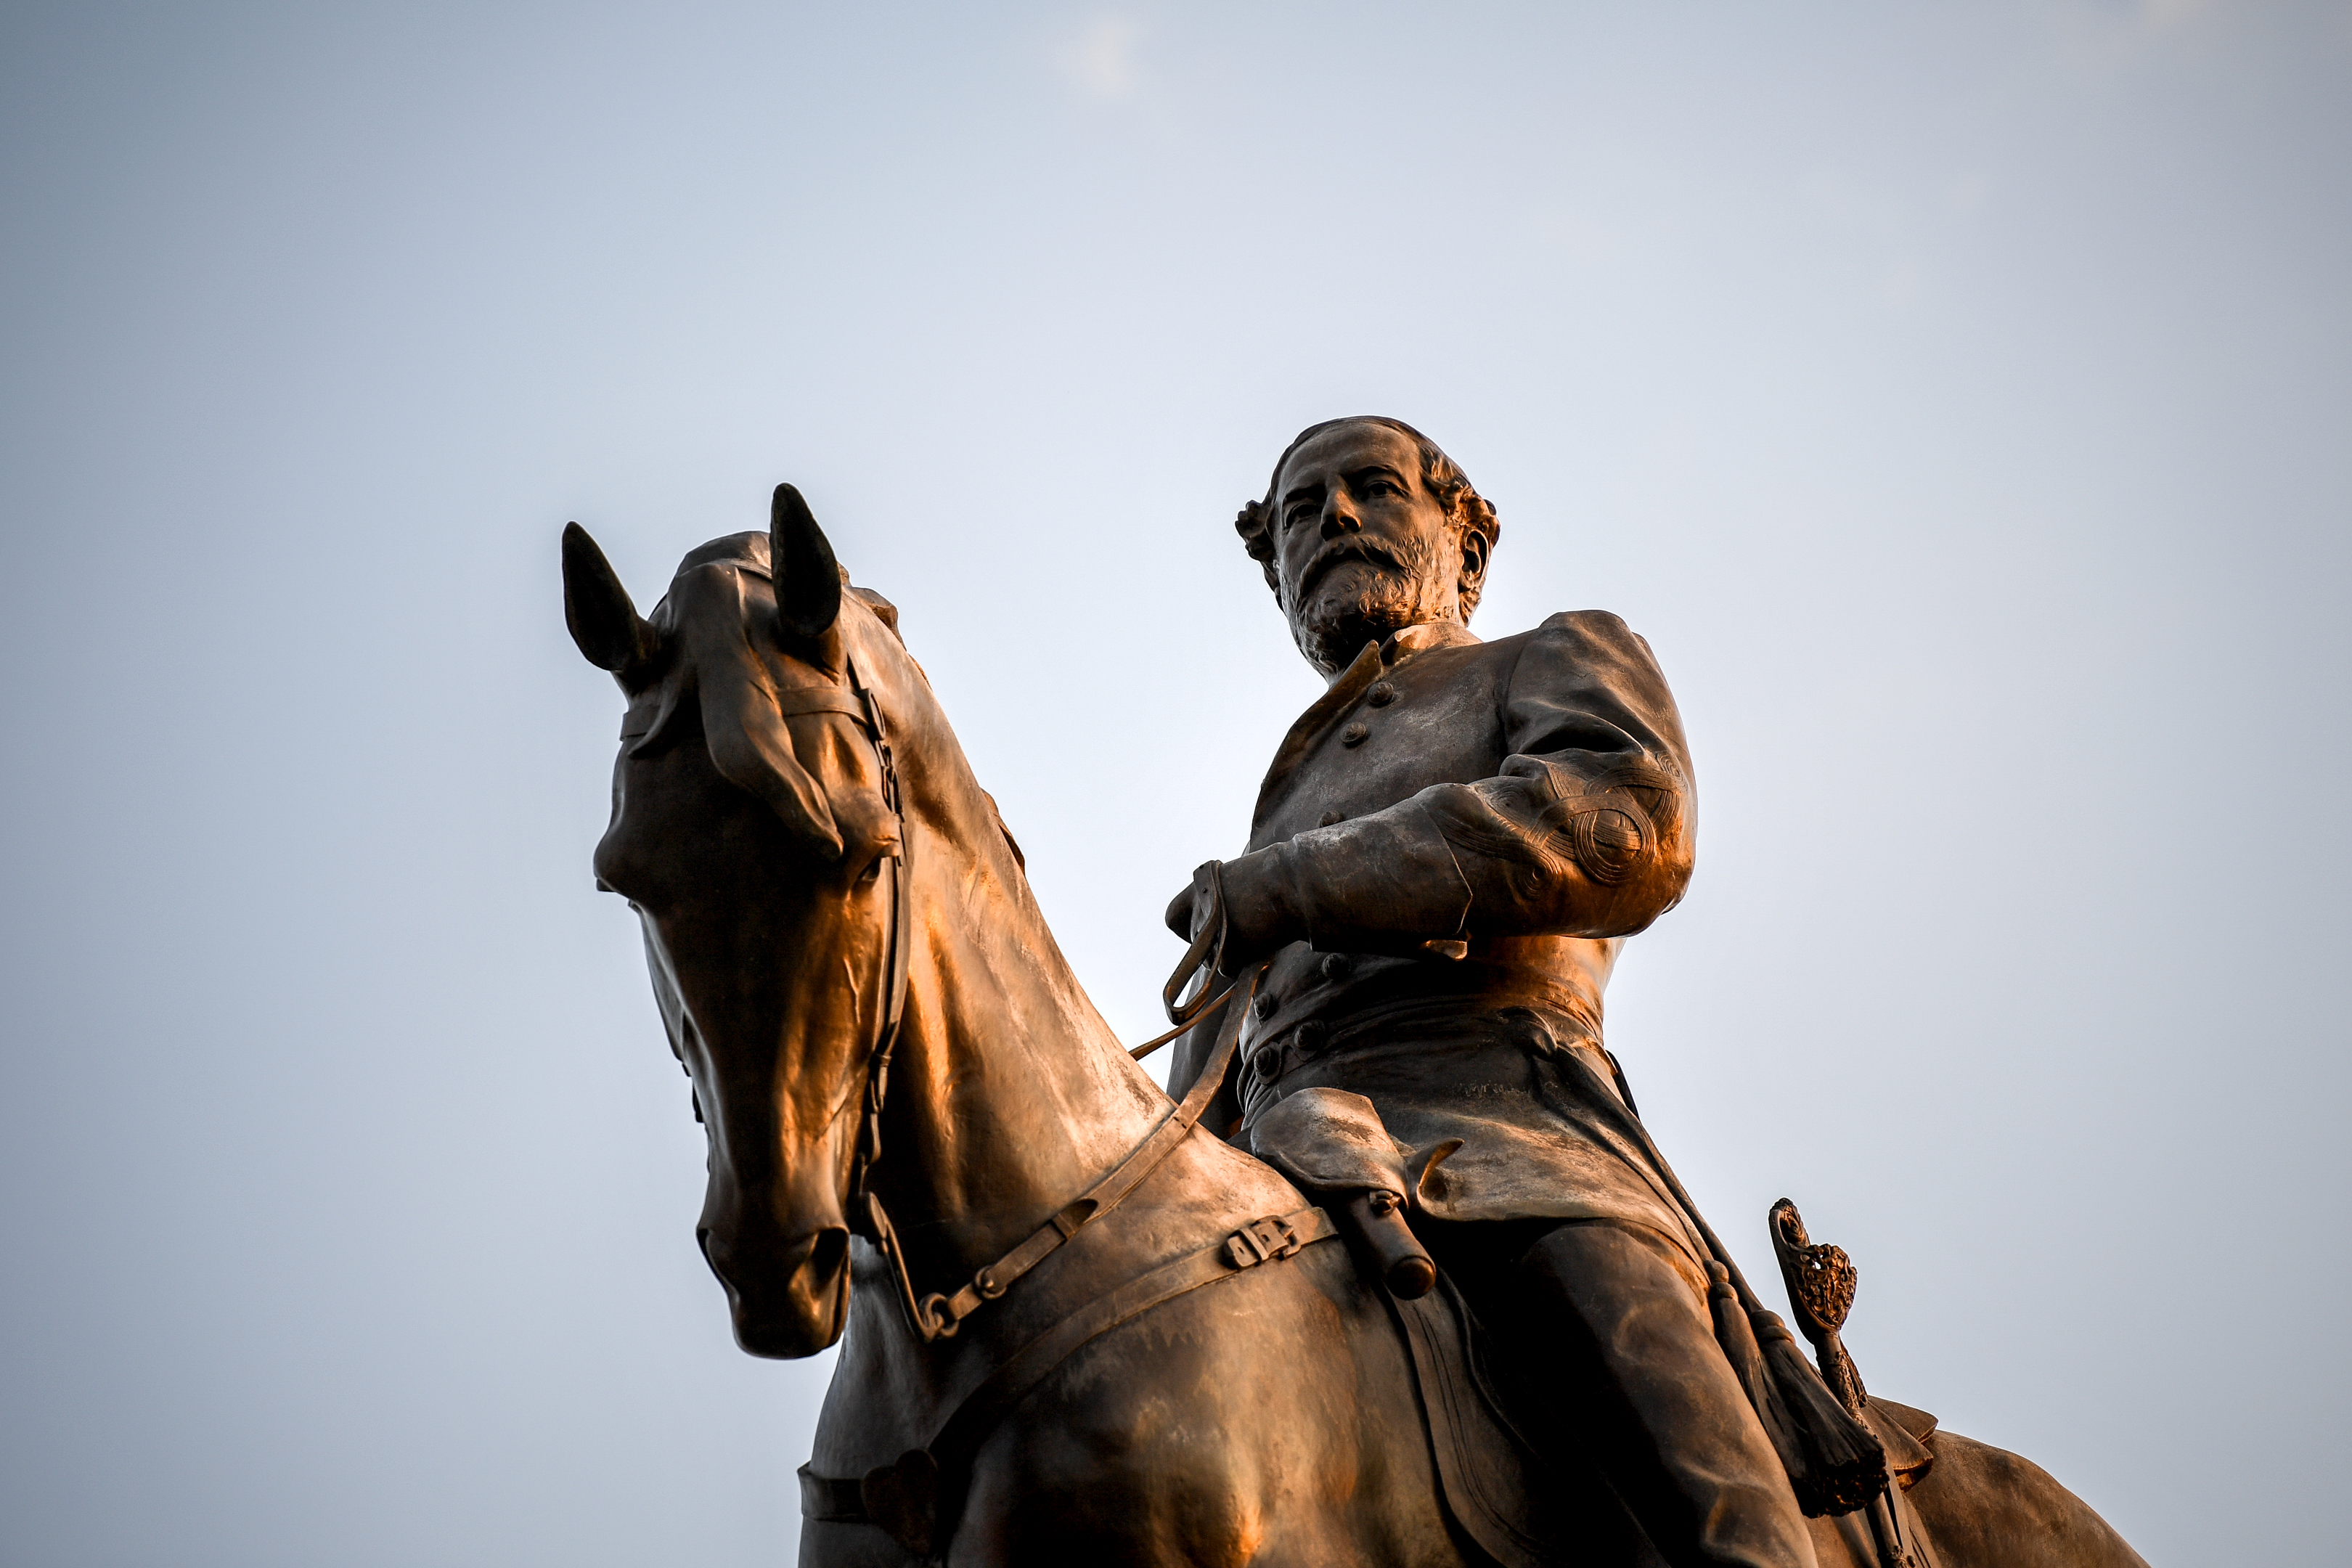 A statue of Confederate Gen. Robert E. Lee in Richmond, Va. MUST CREDIT: Washington Post photo by Salwan Georges The Washington Post